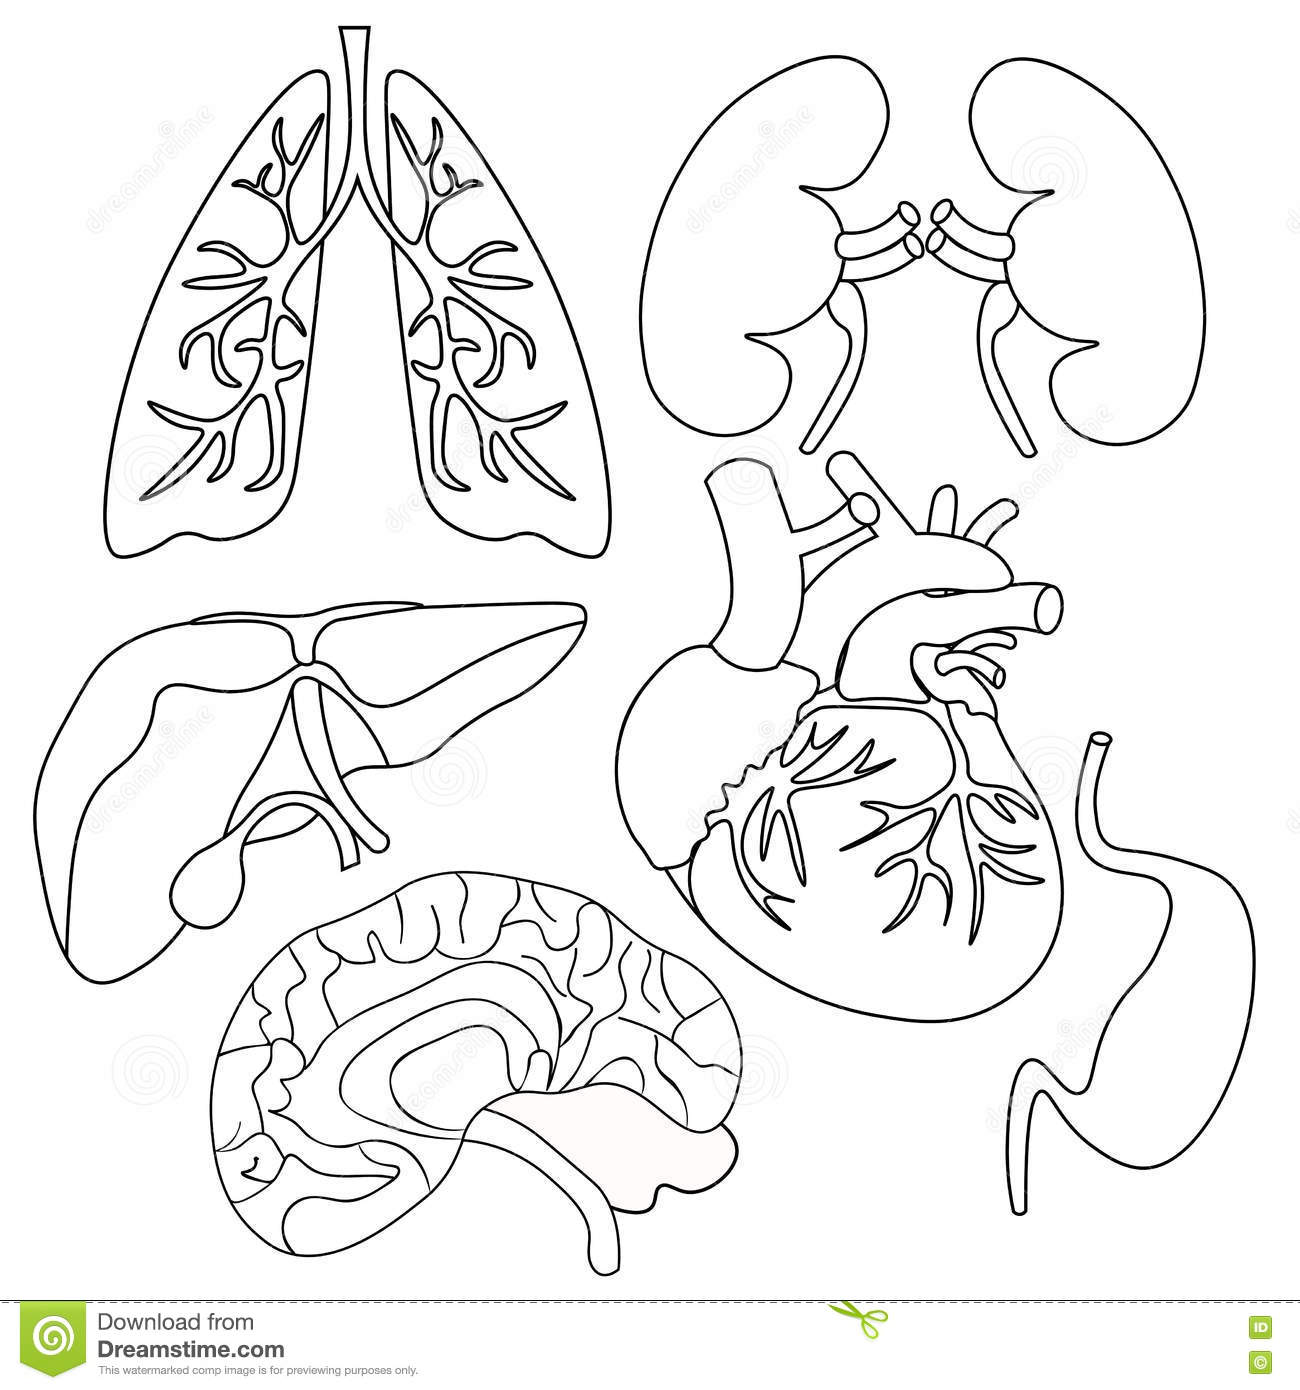 Coloring Set Of Organs Of The Human Heart Lungs Liver Kidneys Stock Vector